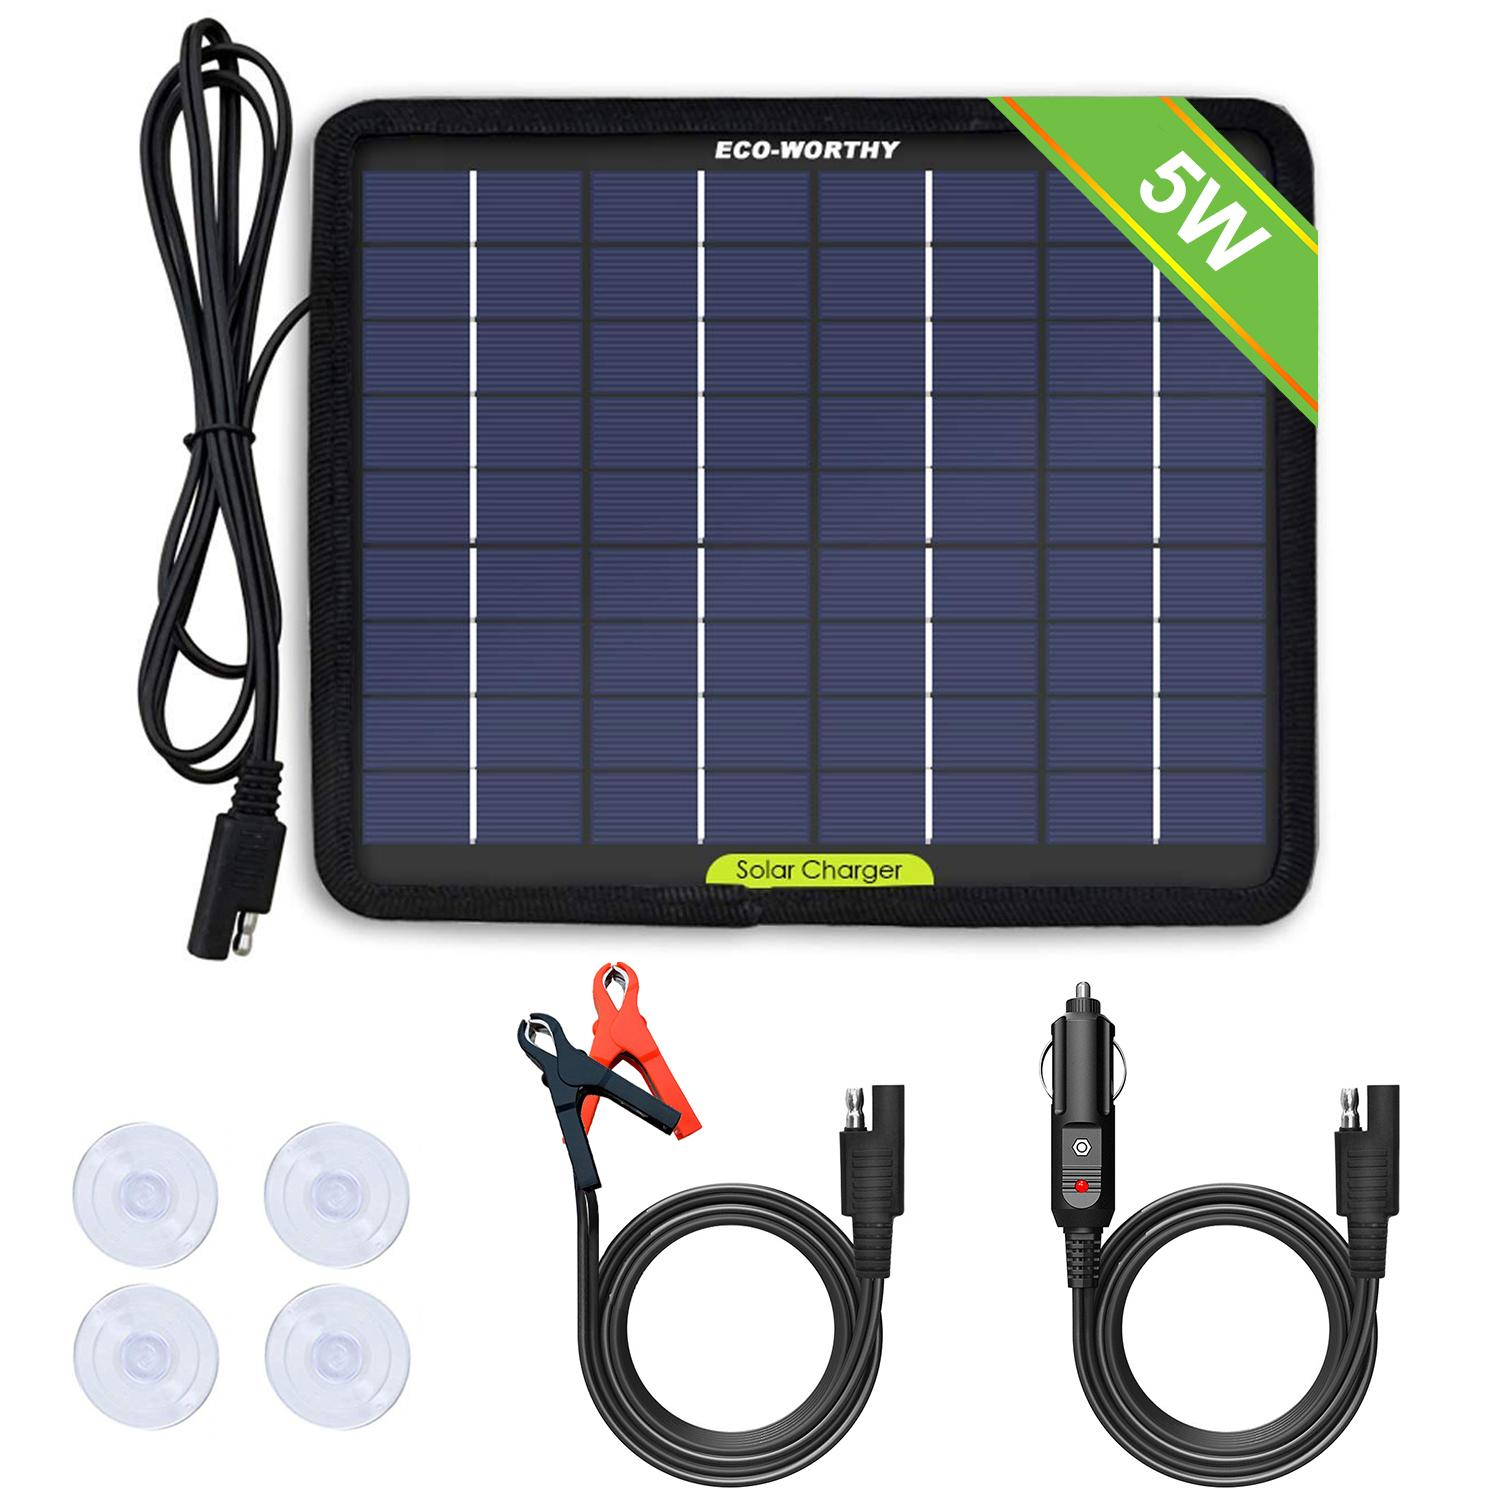 18V 5W Portable Car Boat Automobile Solar Charging Panel Battery Backup Charger